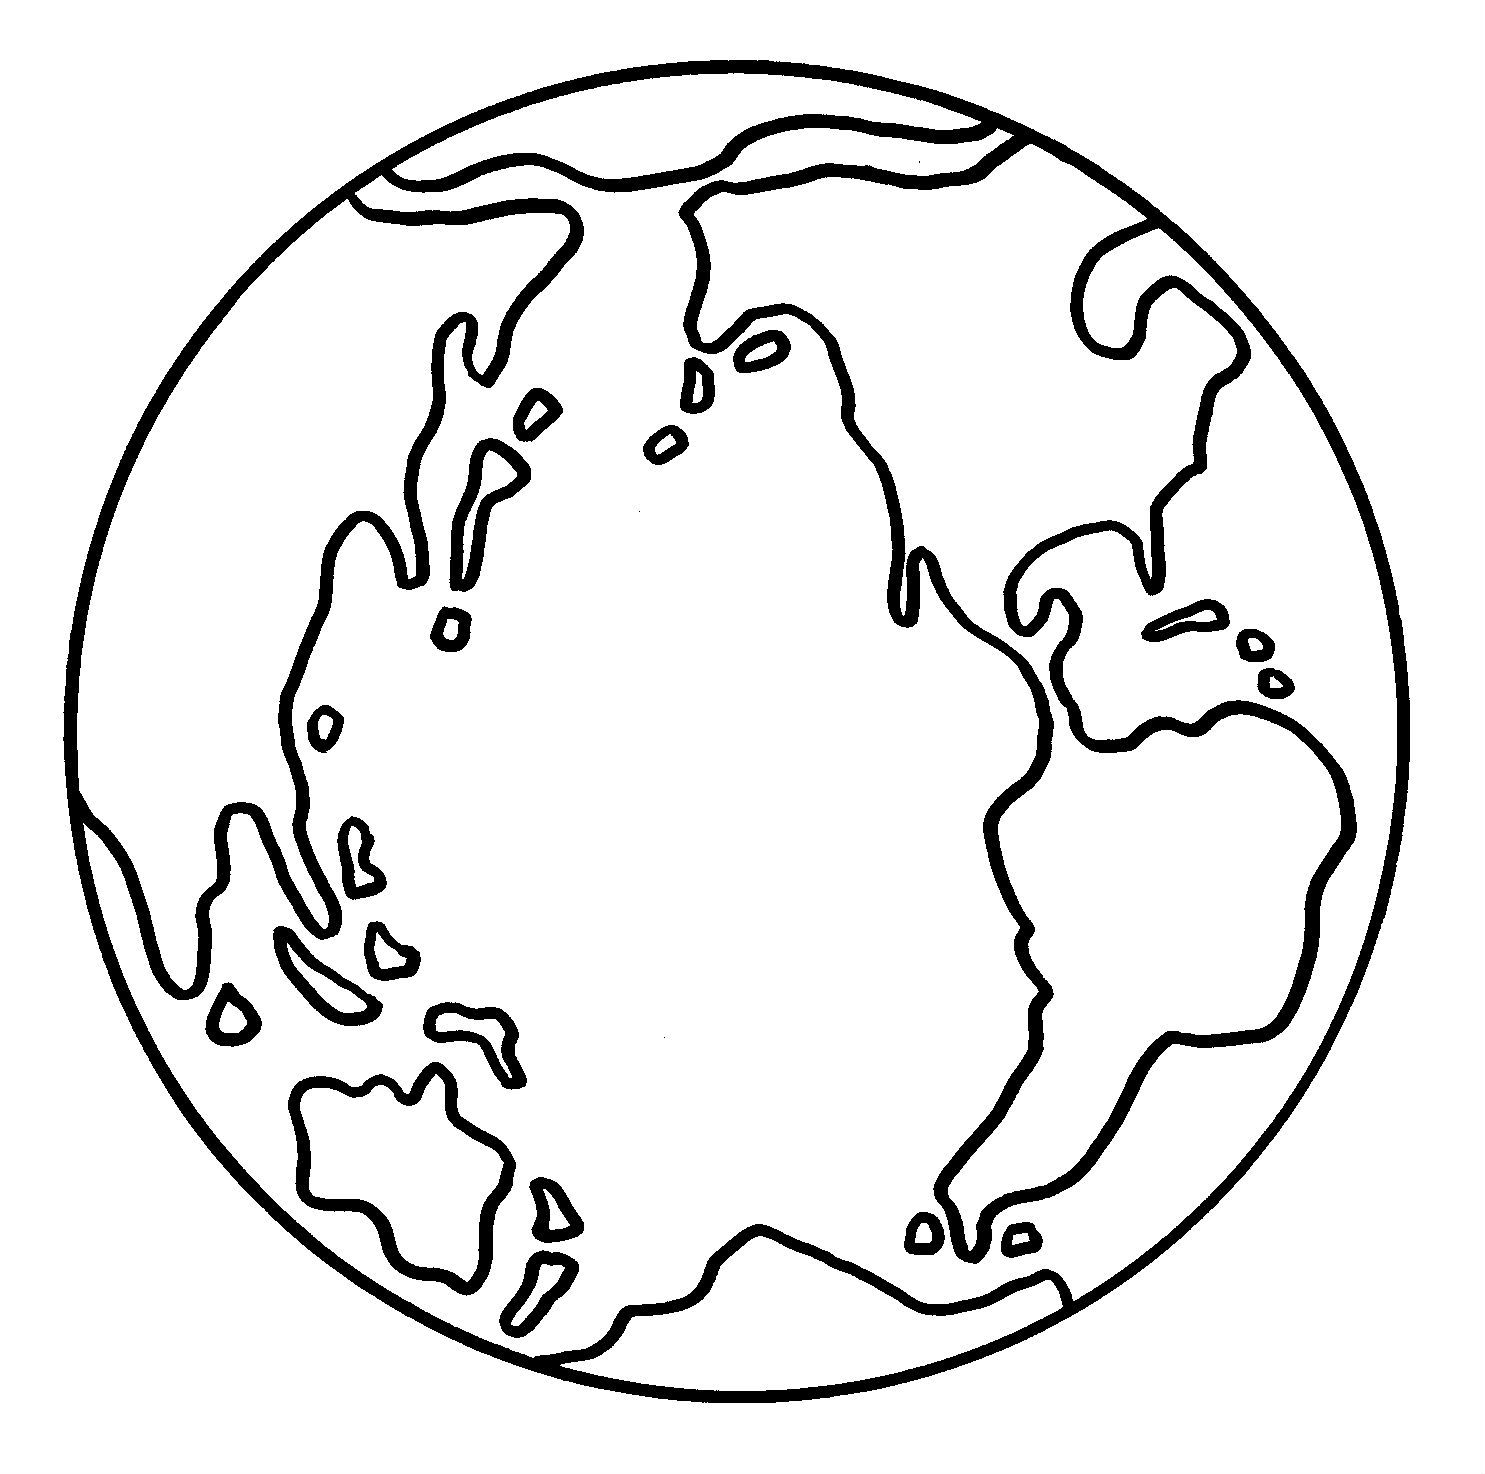 free world day earth day printable coloring pages for preschool